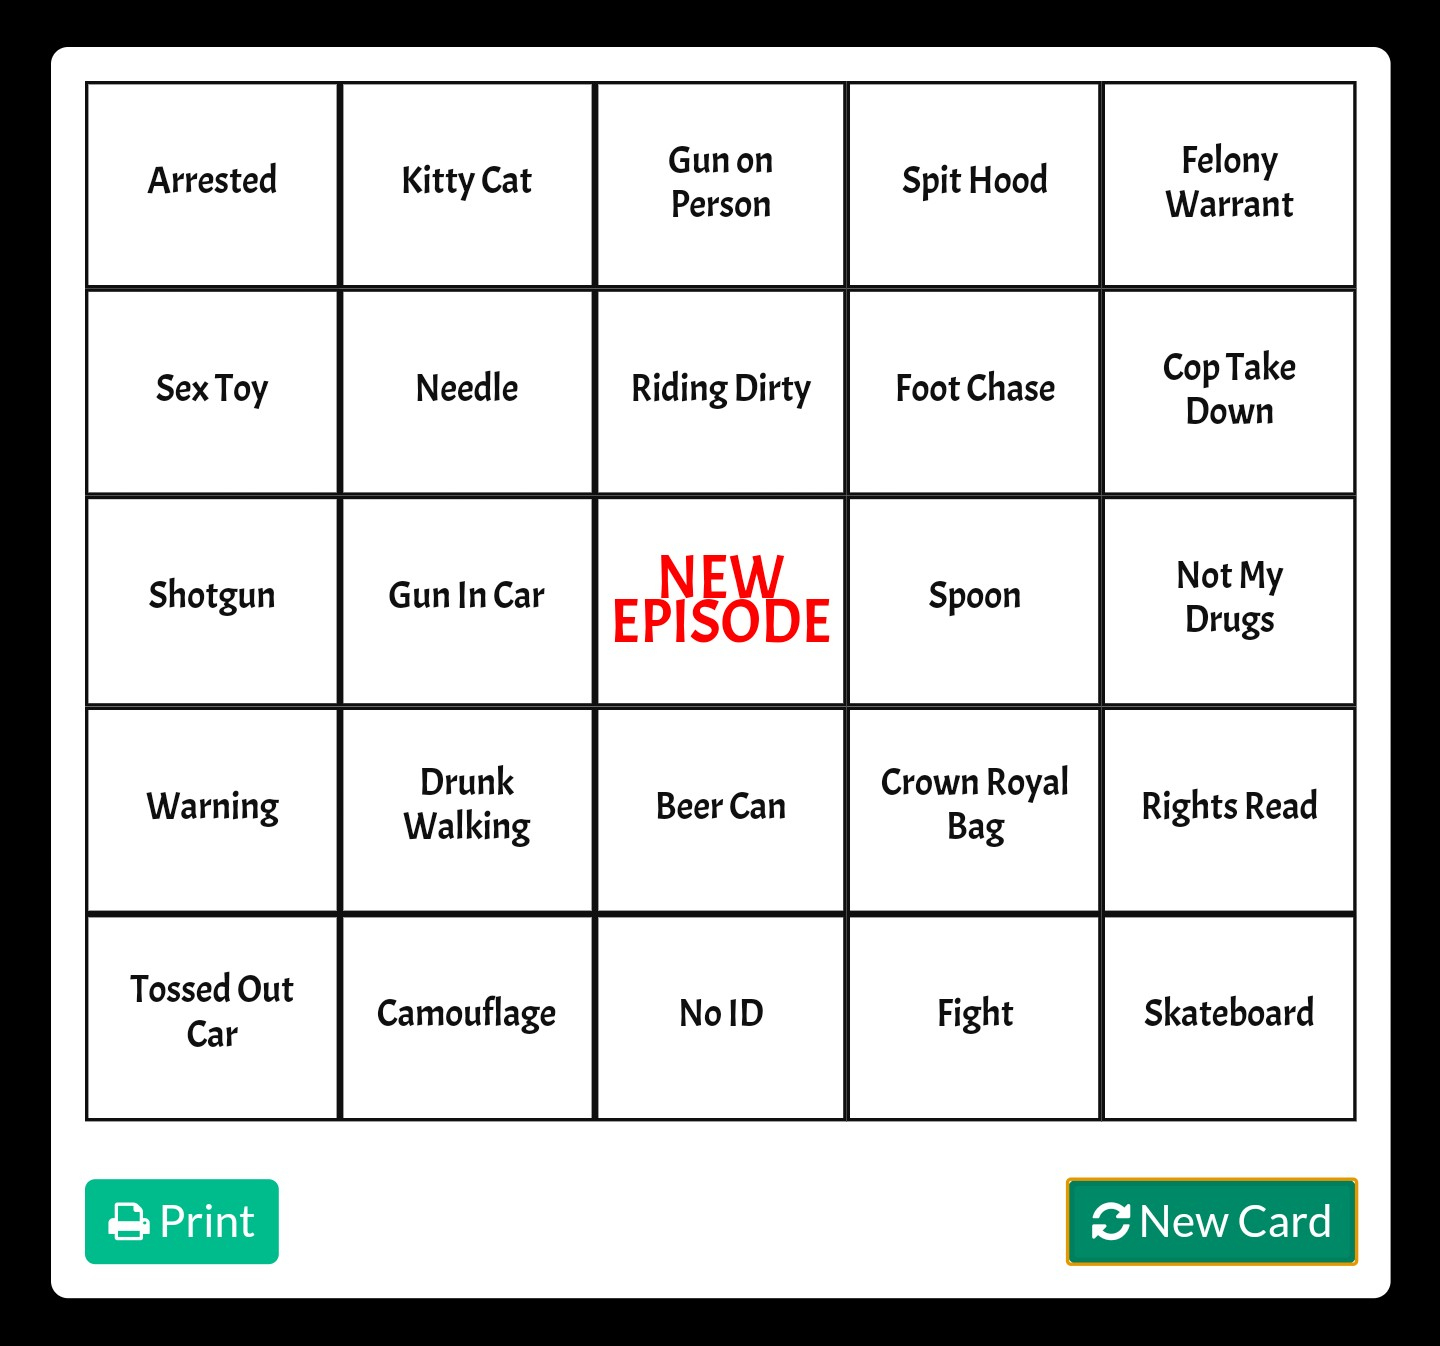 What's Everyone's Bingo Card For The Night? : Livepd